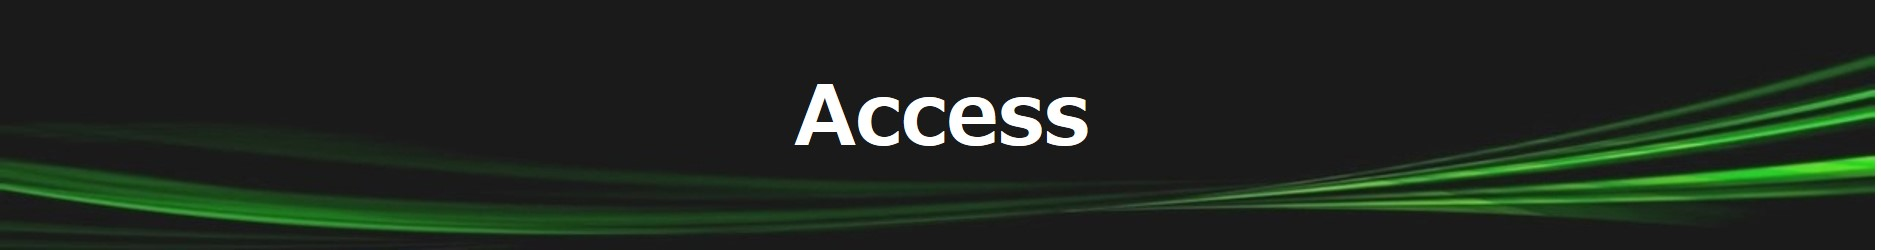 title-access